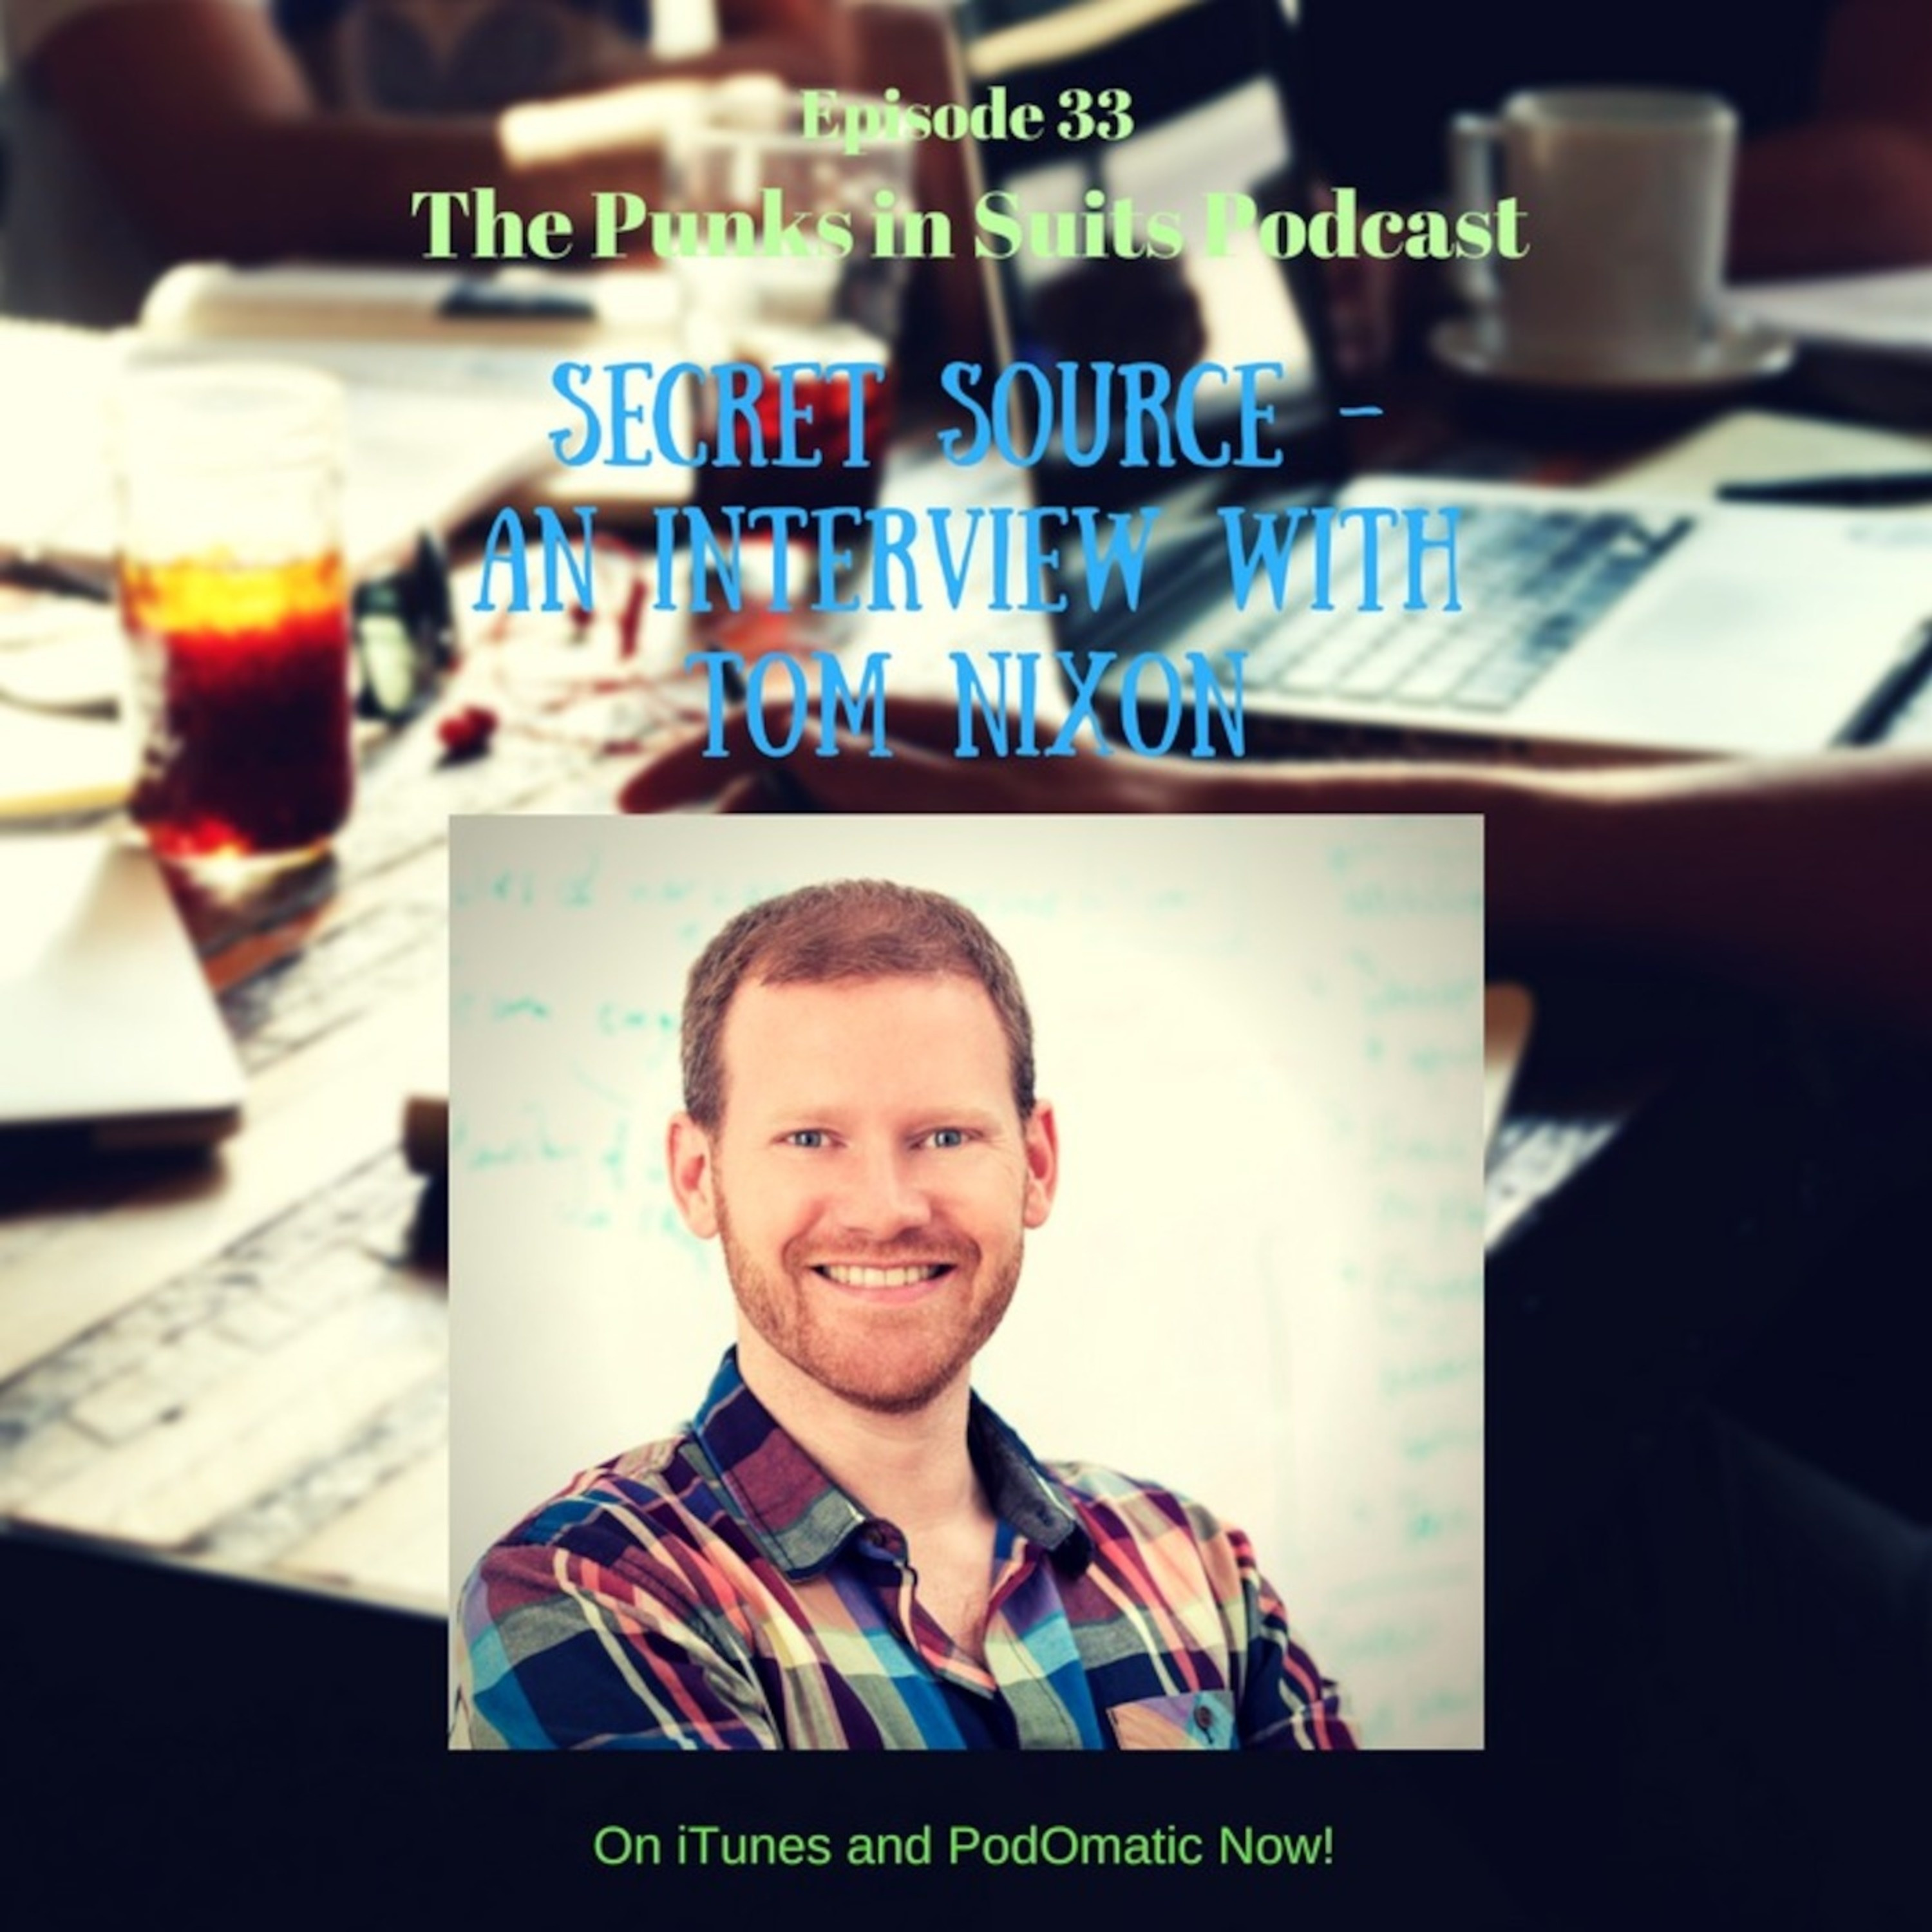 Episode 33: Secret Source - An Interview with Tom Nixon